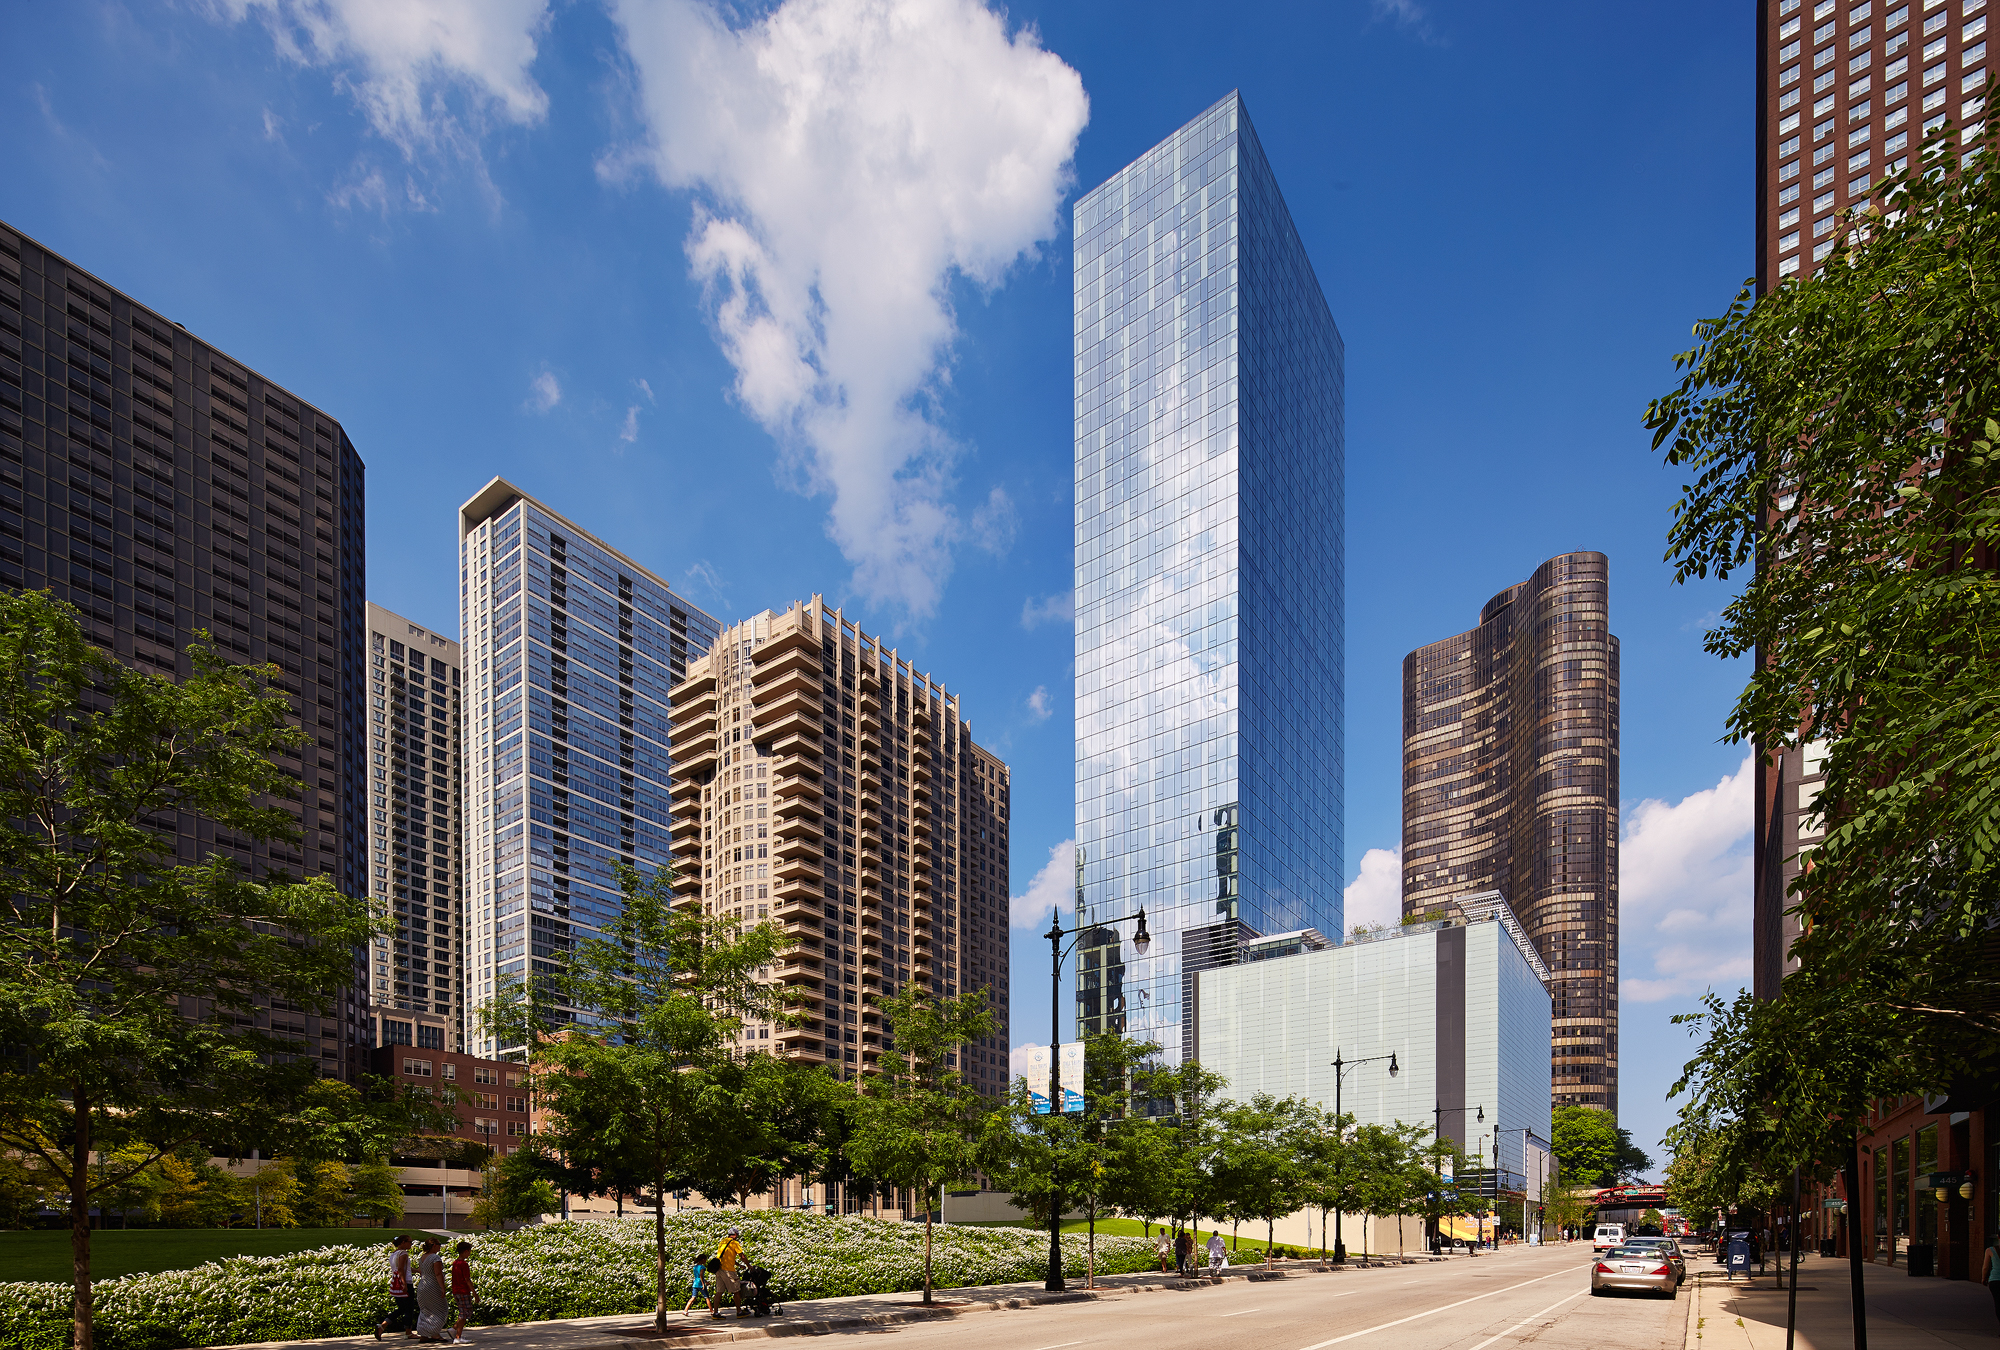 500 Lake Shore Drive  SCB  Chicago, IL     Return to Projects